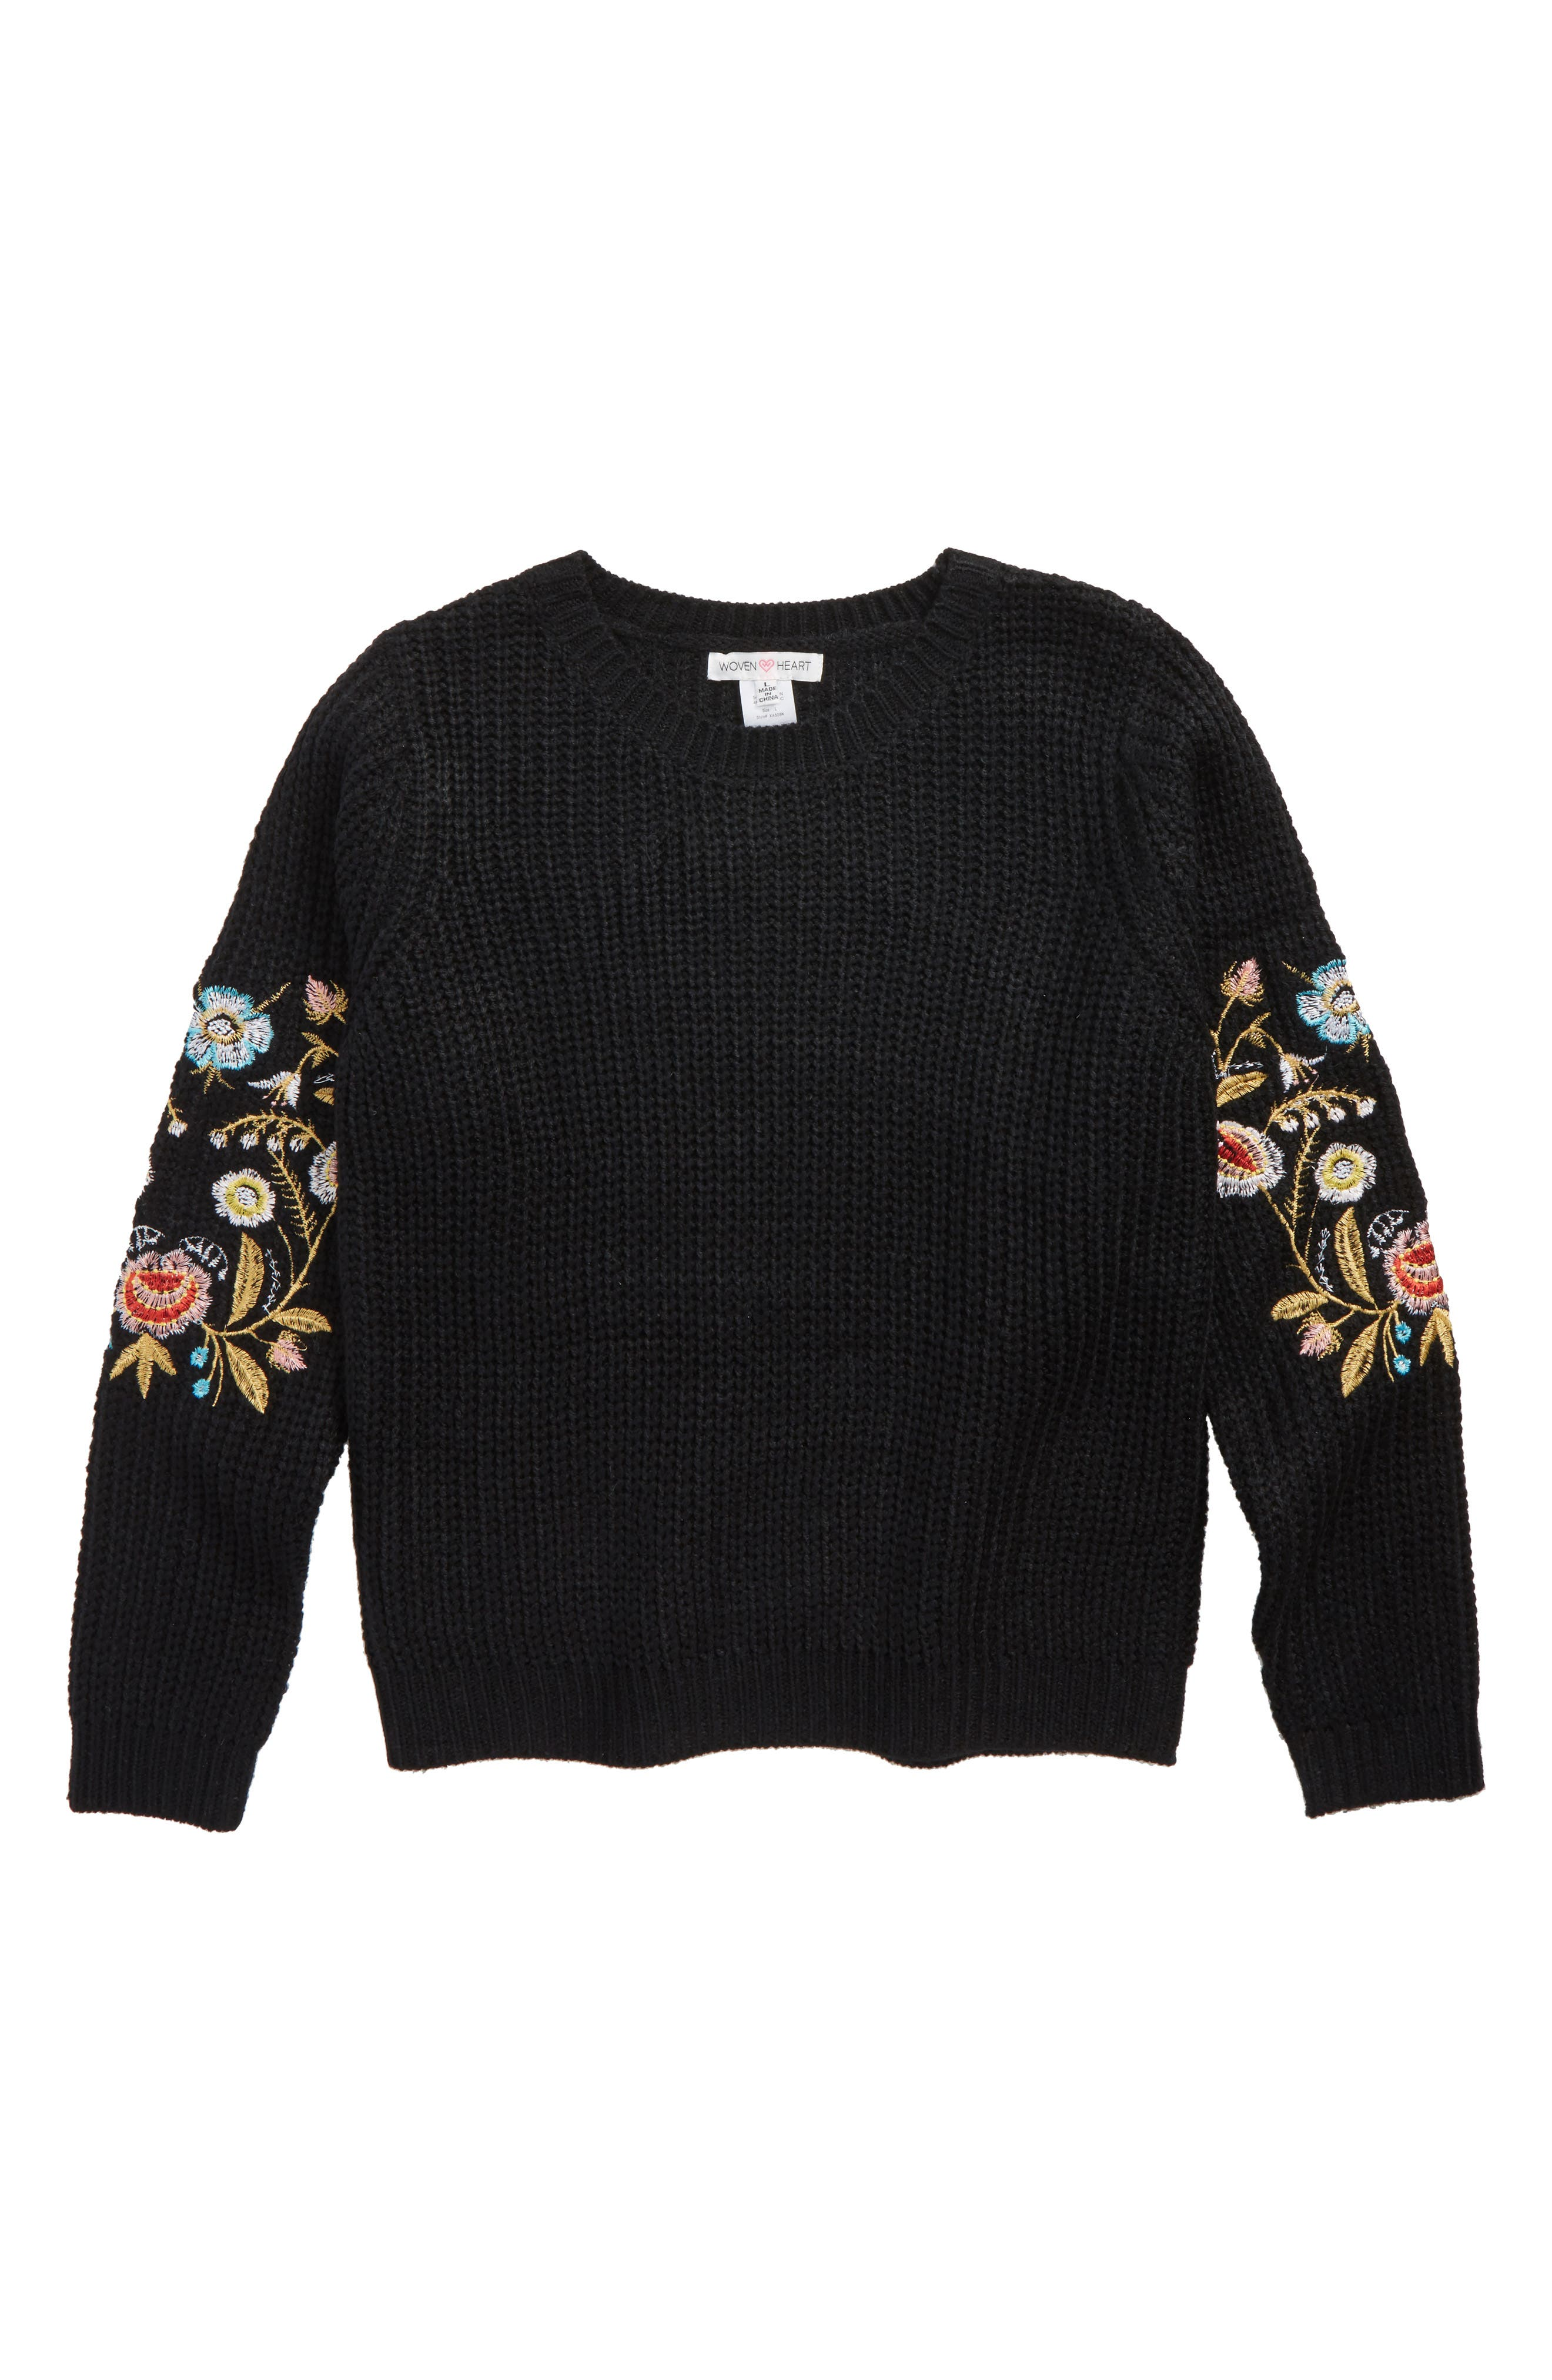 Alternate Image 1 Selected - Woven Heart Embroidered Sleeve Sweater (Big Girls)